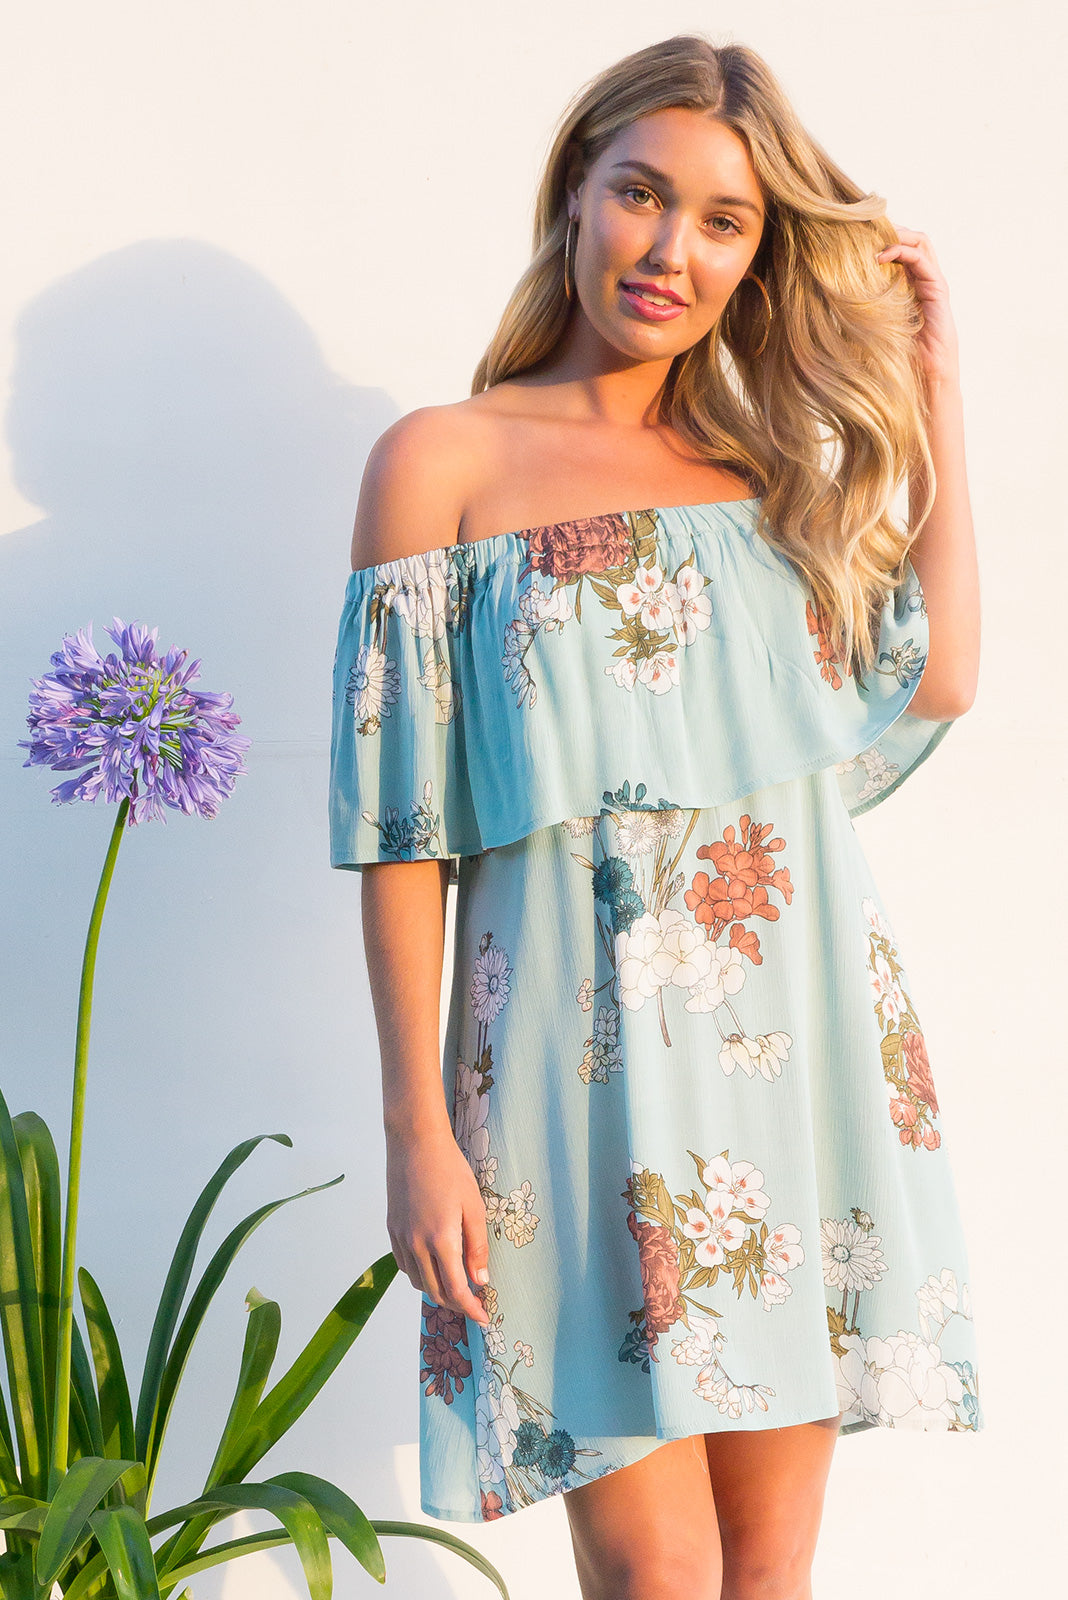 Macarena off the shoulder mini dress in a soft tiffany blue botanical floral print on soft crinkled rayon